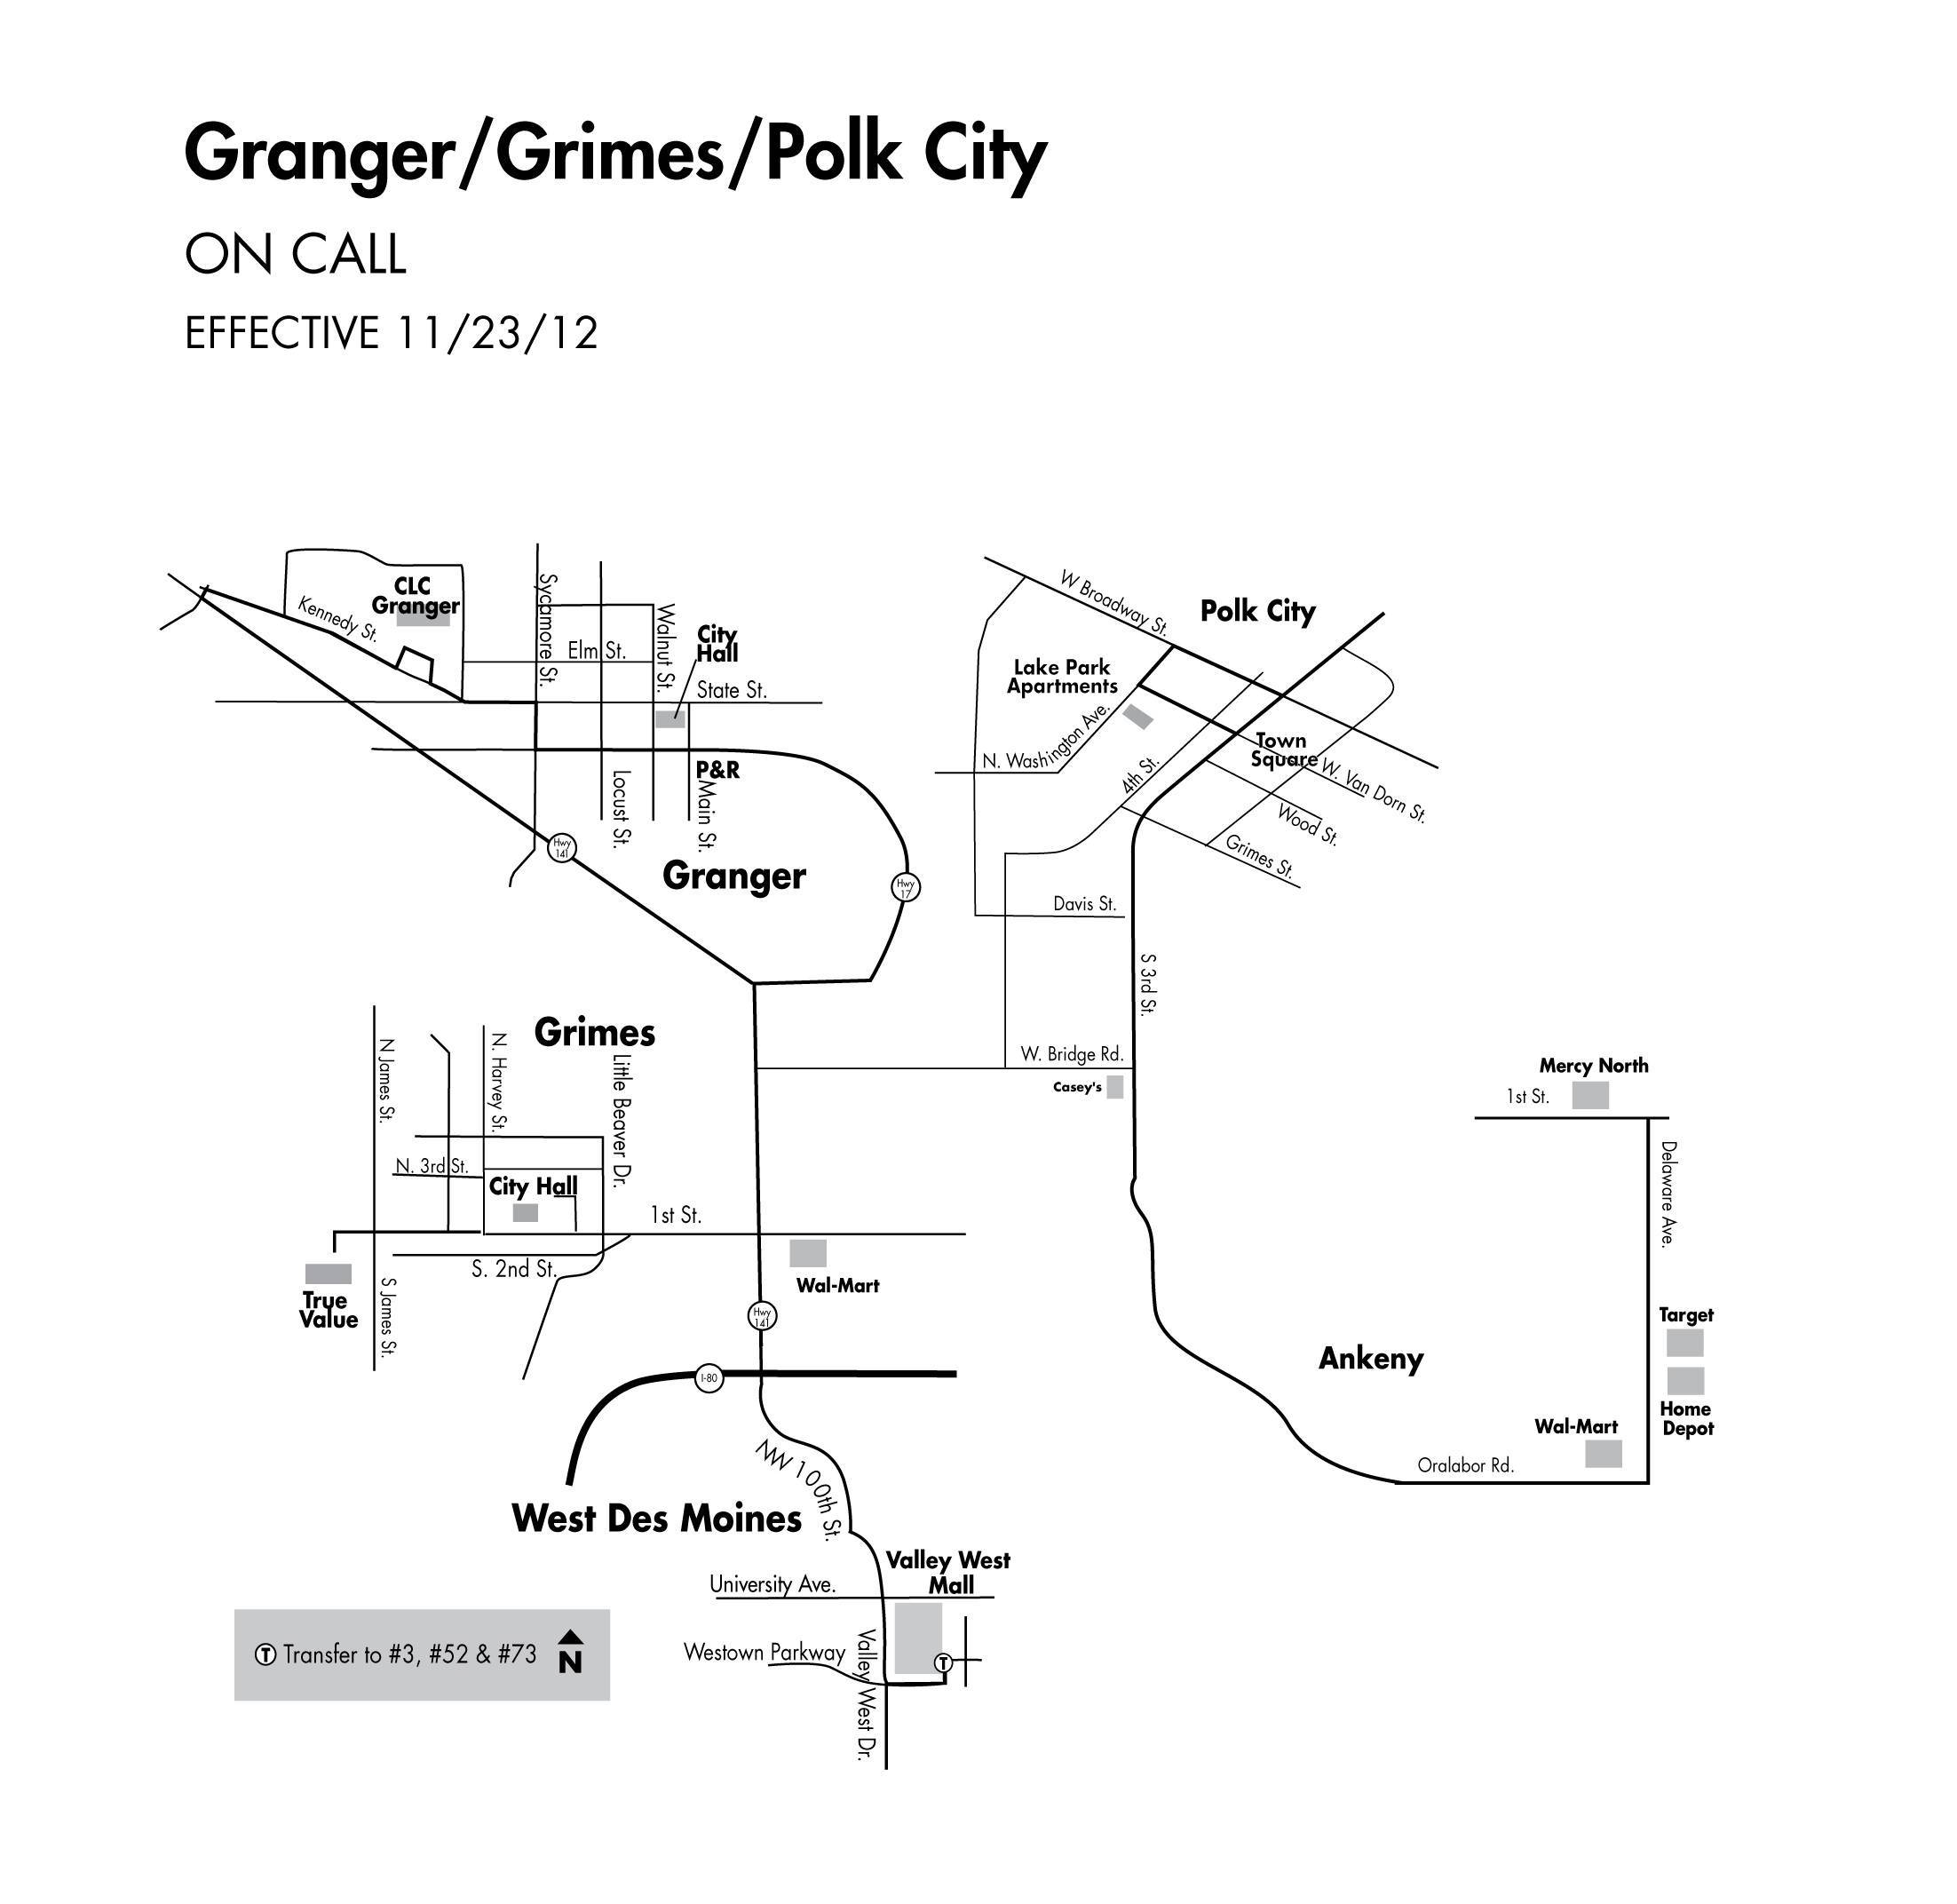 DART On Call Service - Granger/Grimes/Polk City Map